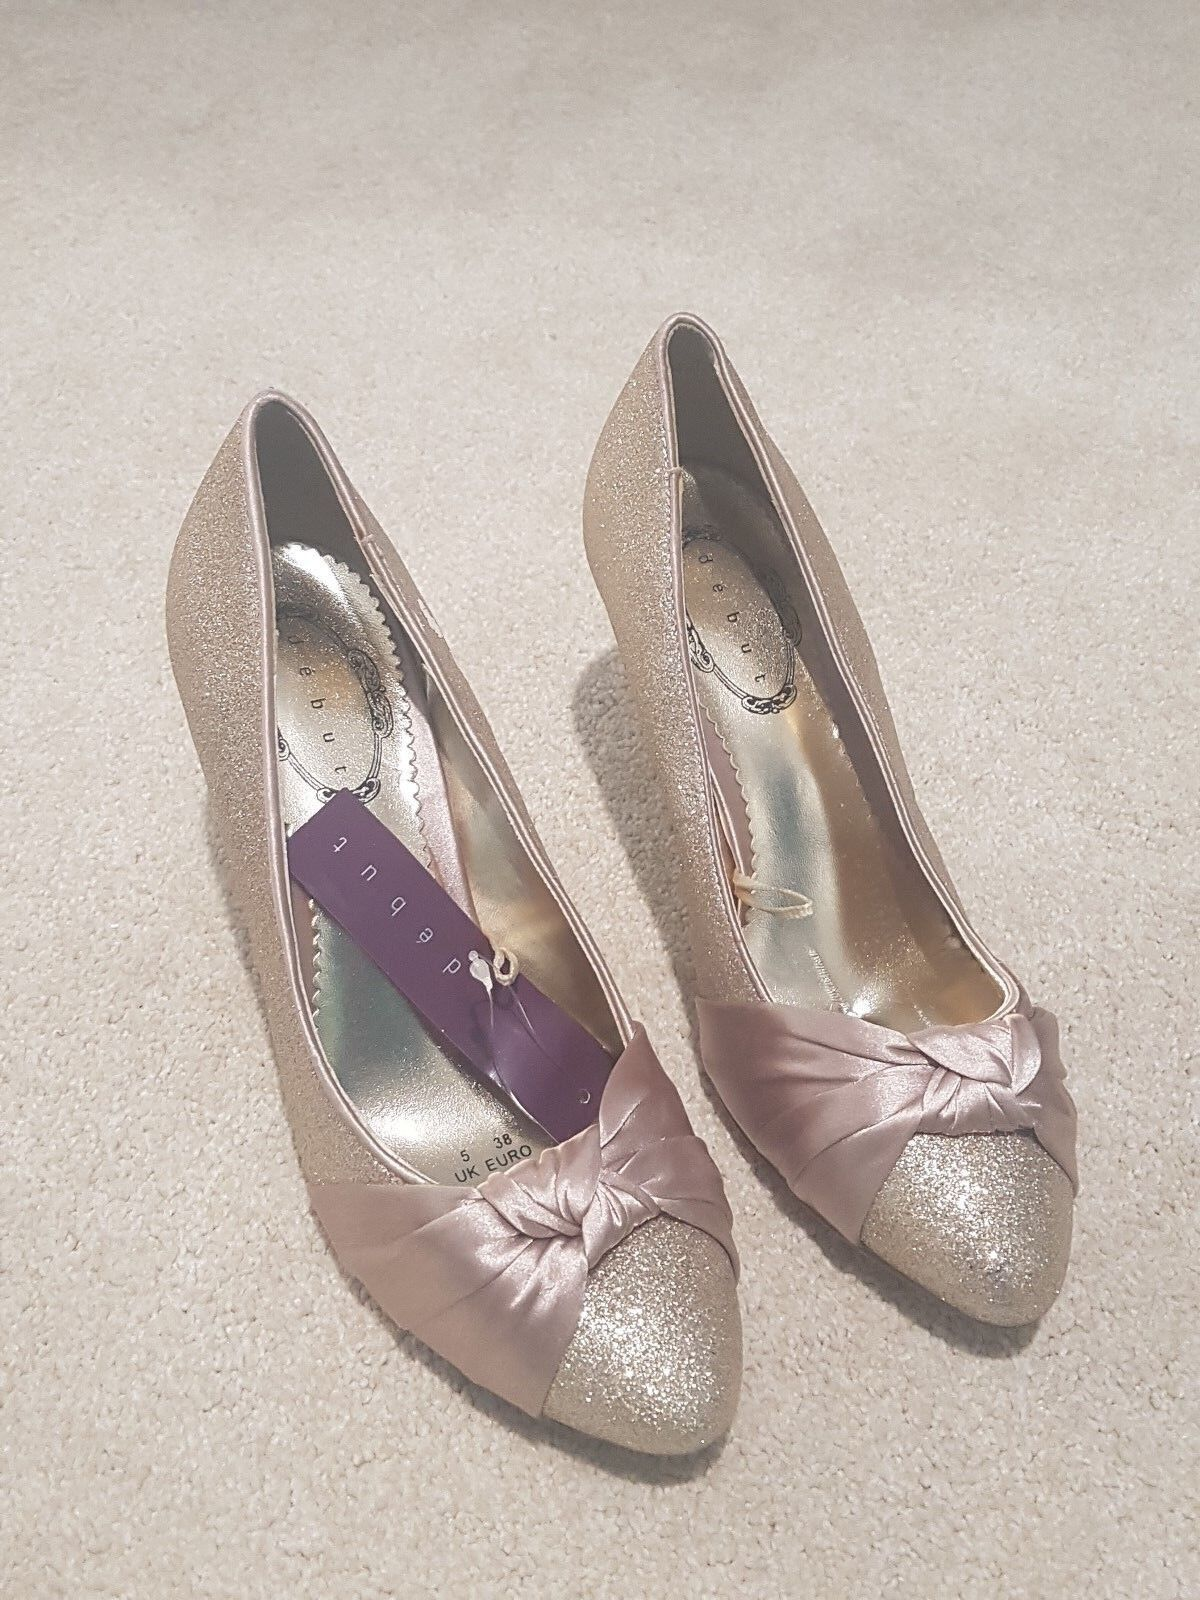 DEBUT GOLD TOE SPARKLY GLITTER SATIN KNOT TOE GOLD TRIM STILETTO HEEL PARTY COURT SHOES 5 35e223